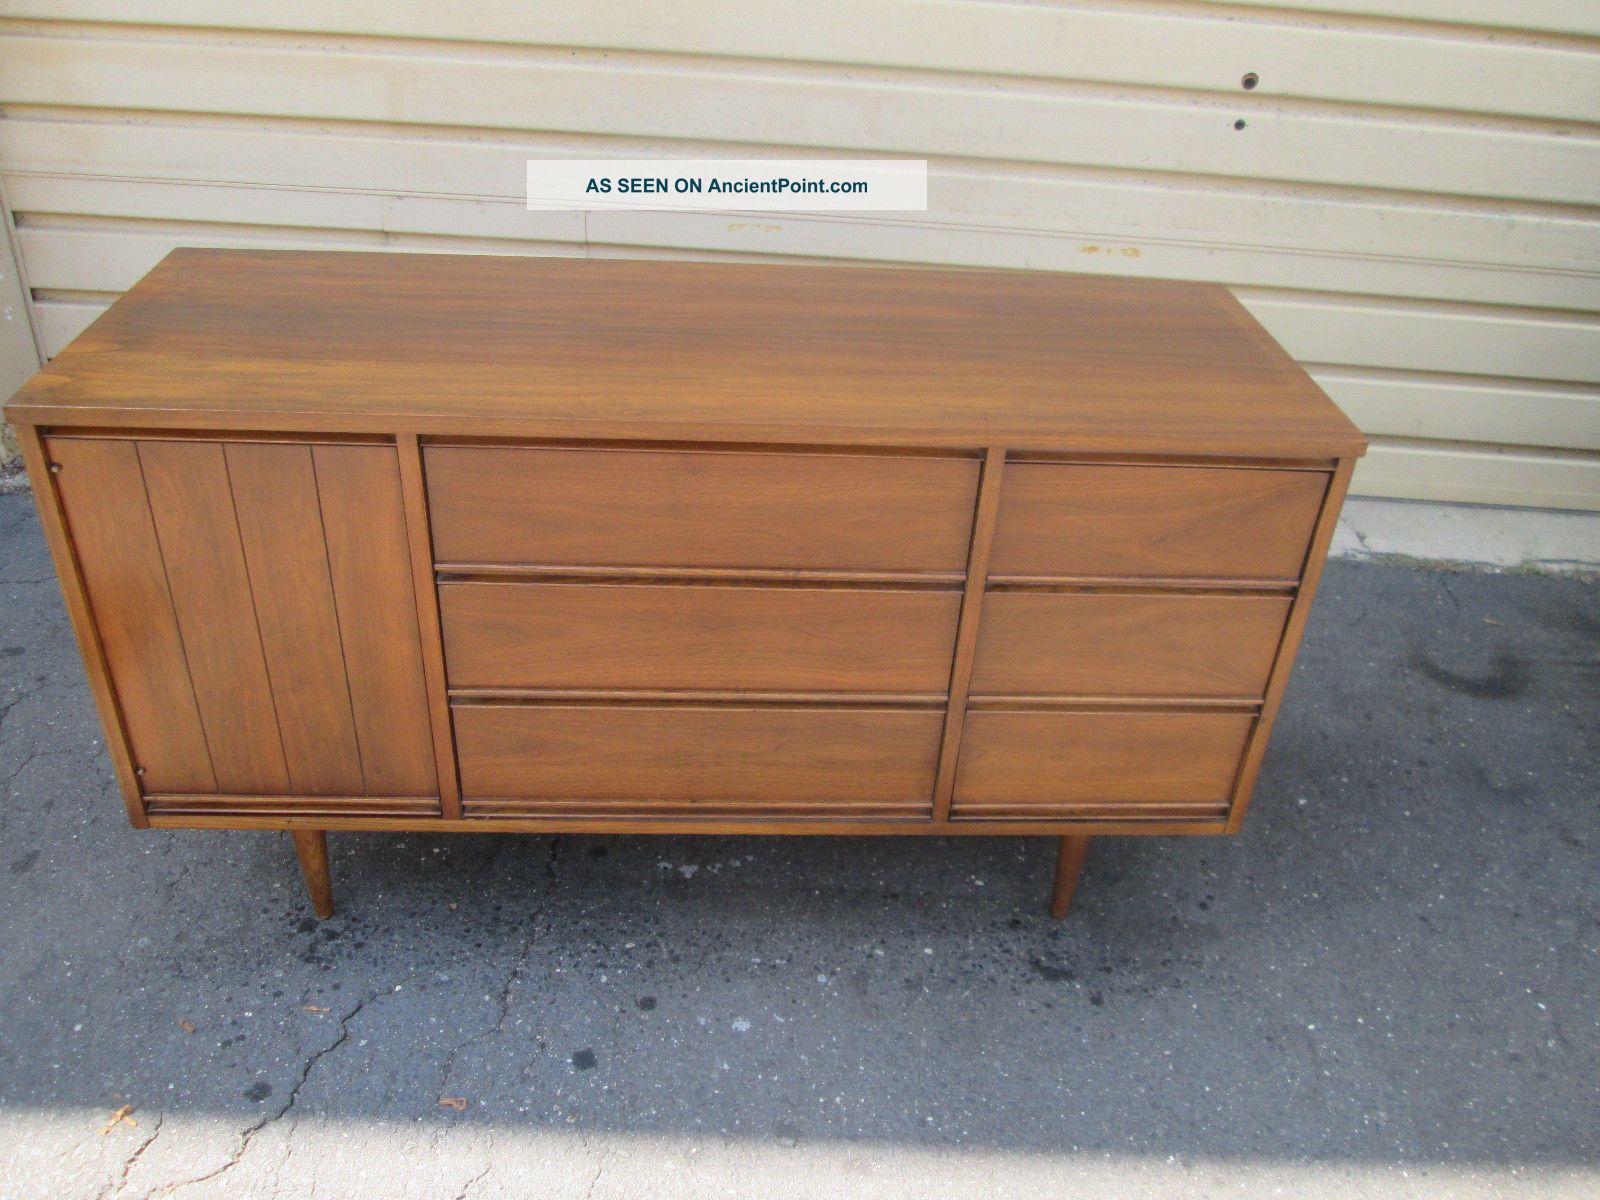 56044 Mid Century Modern Buffet Sideboard Server Cabinet Post-1950 photo